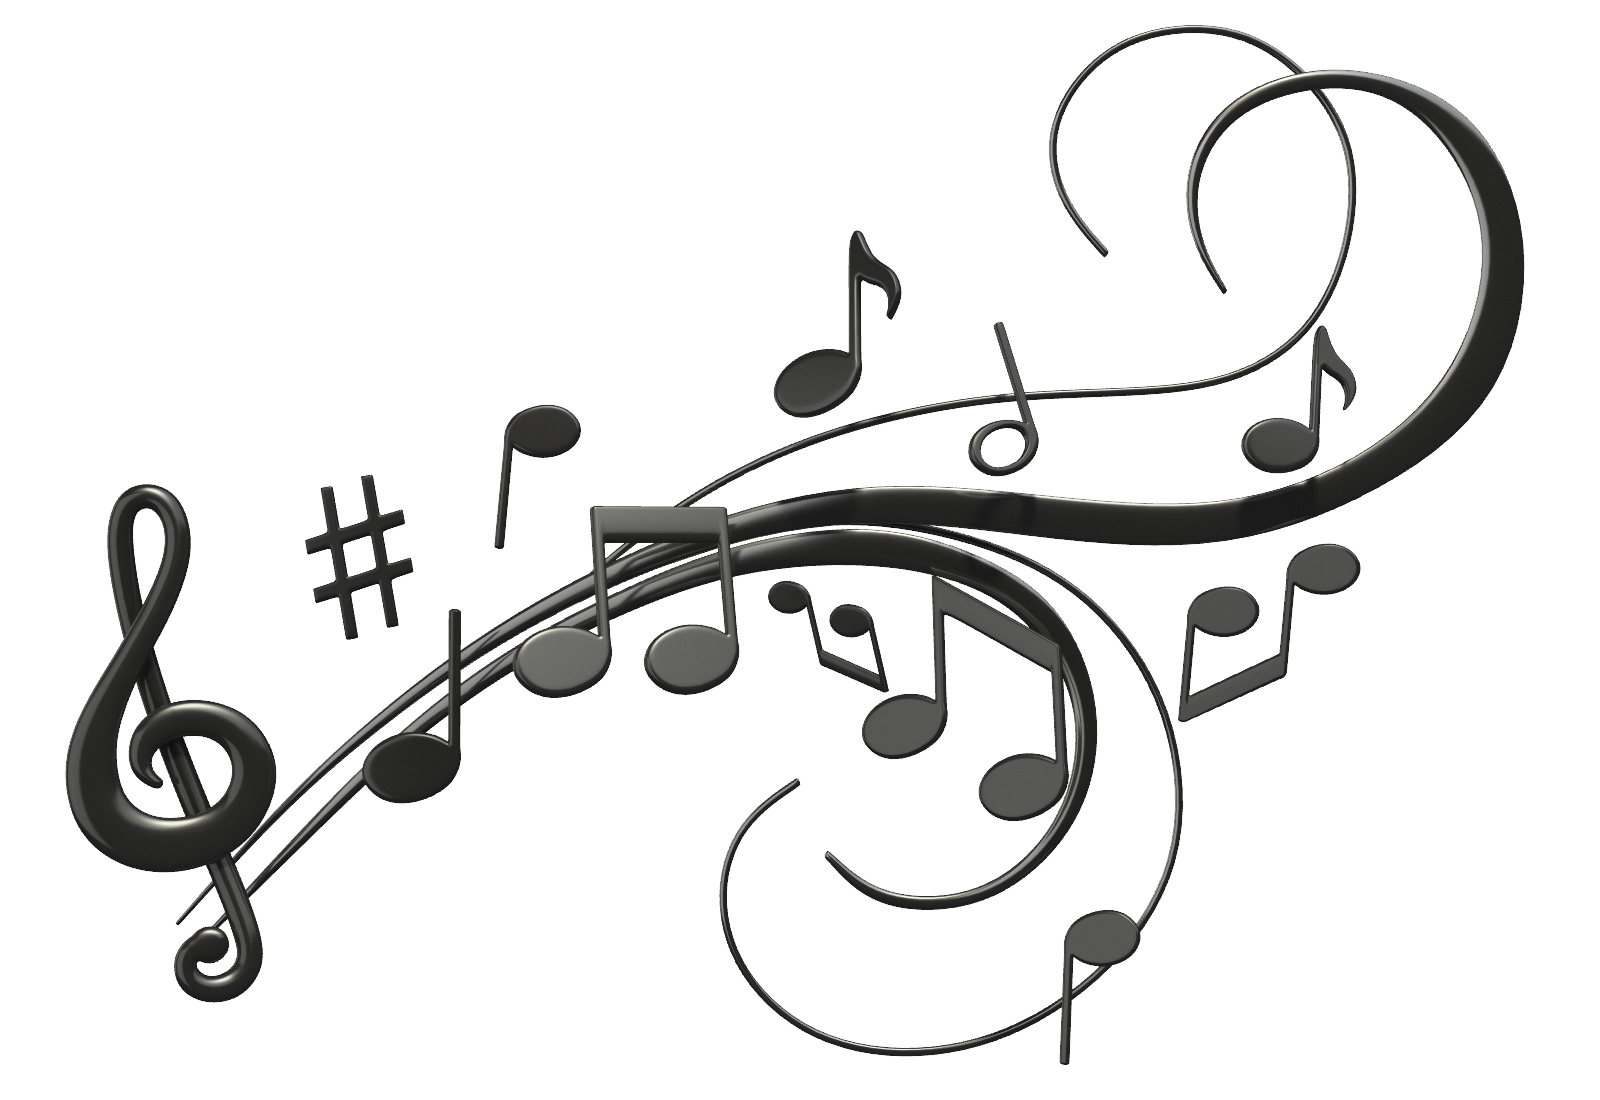 Download free png music. Notes